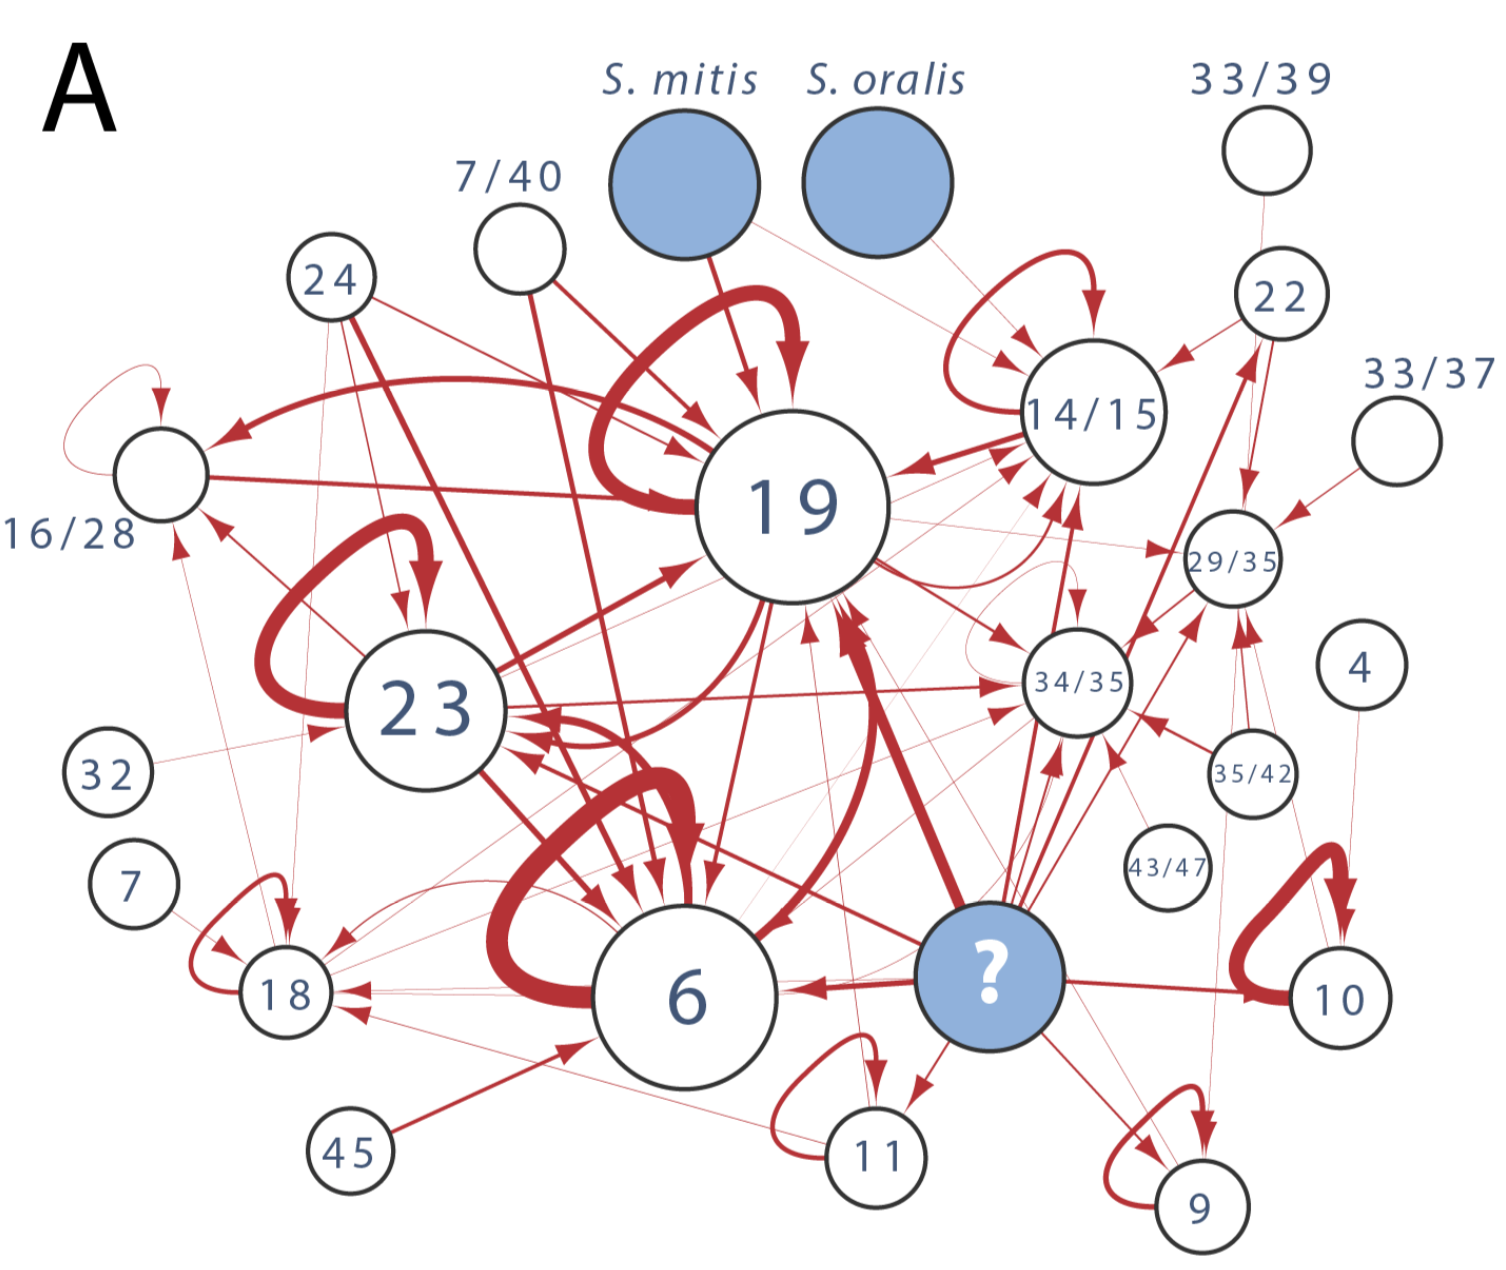 Recombination highway map. (From [1].)